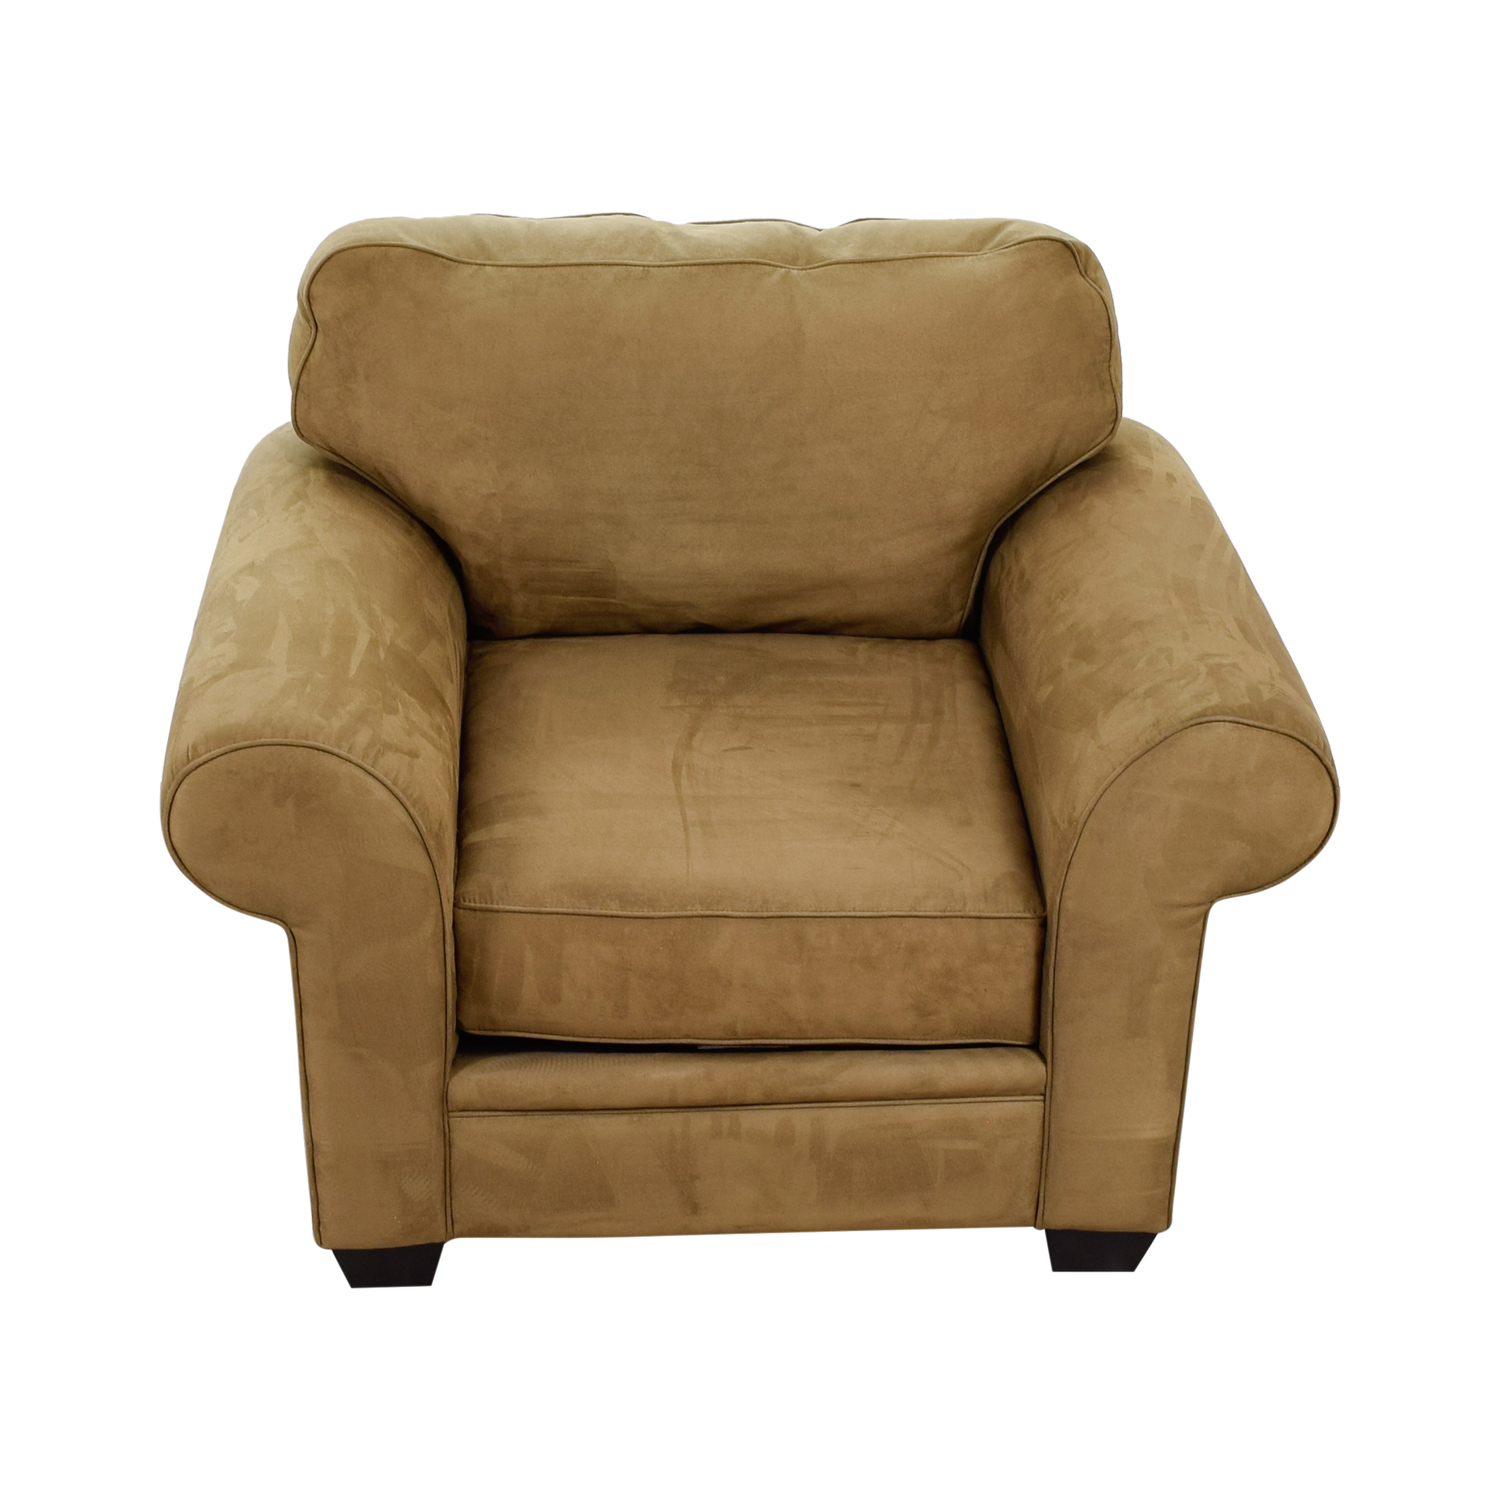 Macy's Macy's Tan Oversized Armchair Accent Chairs